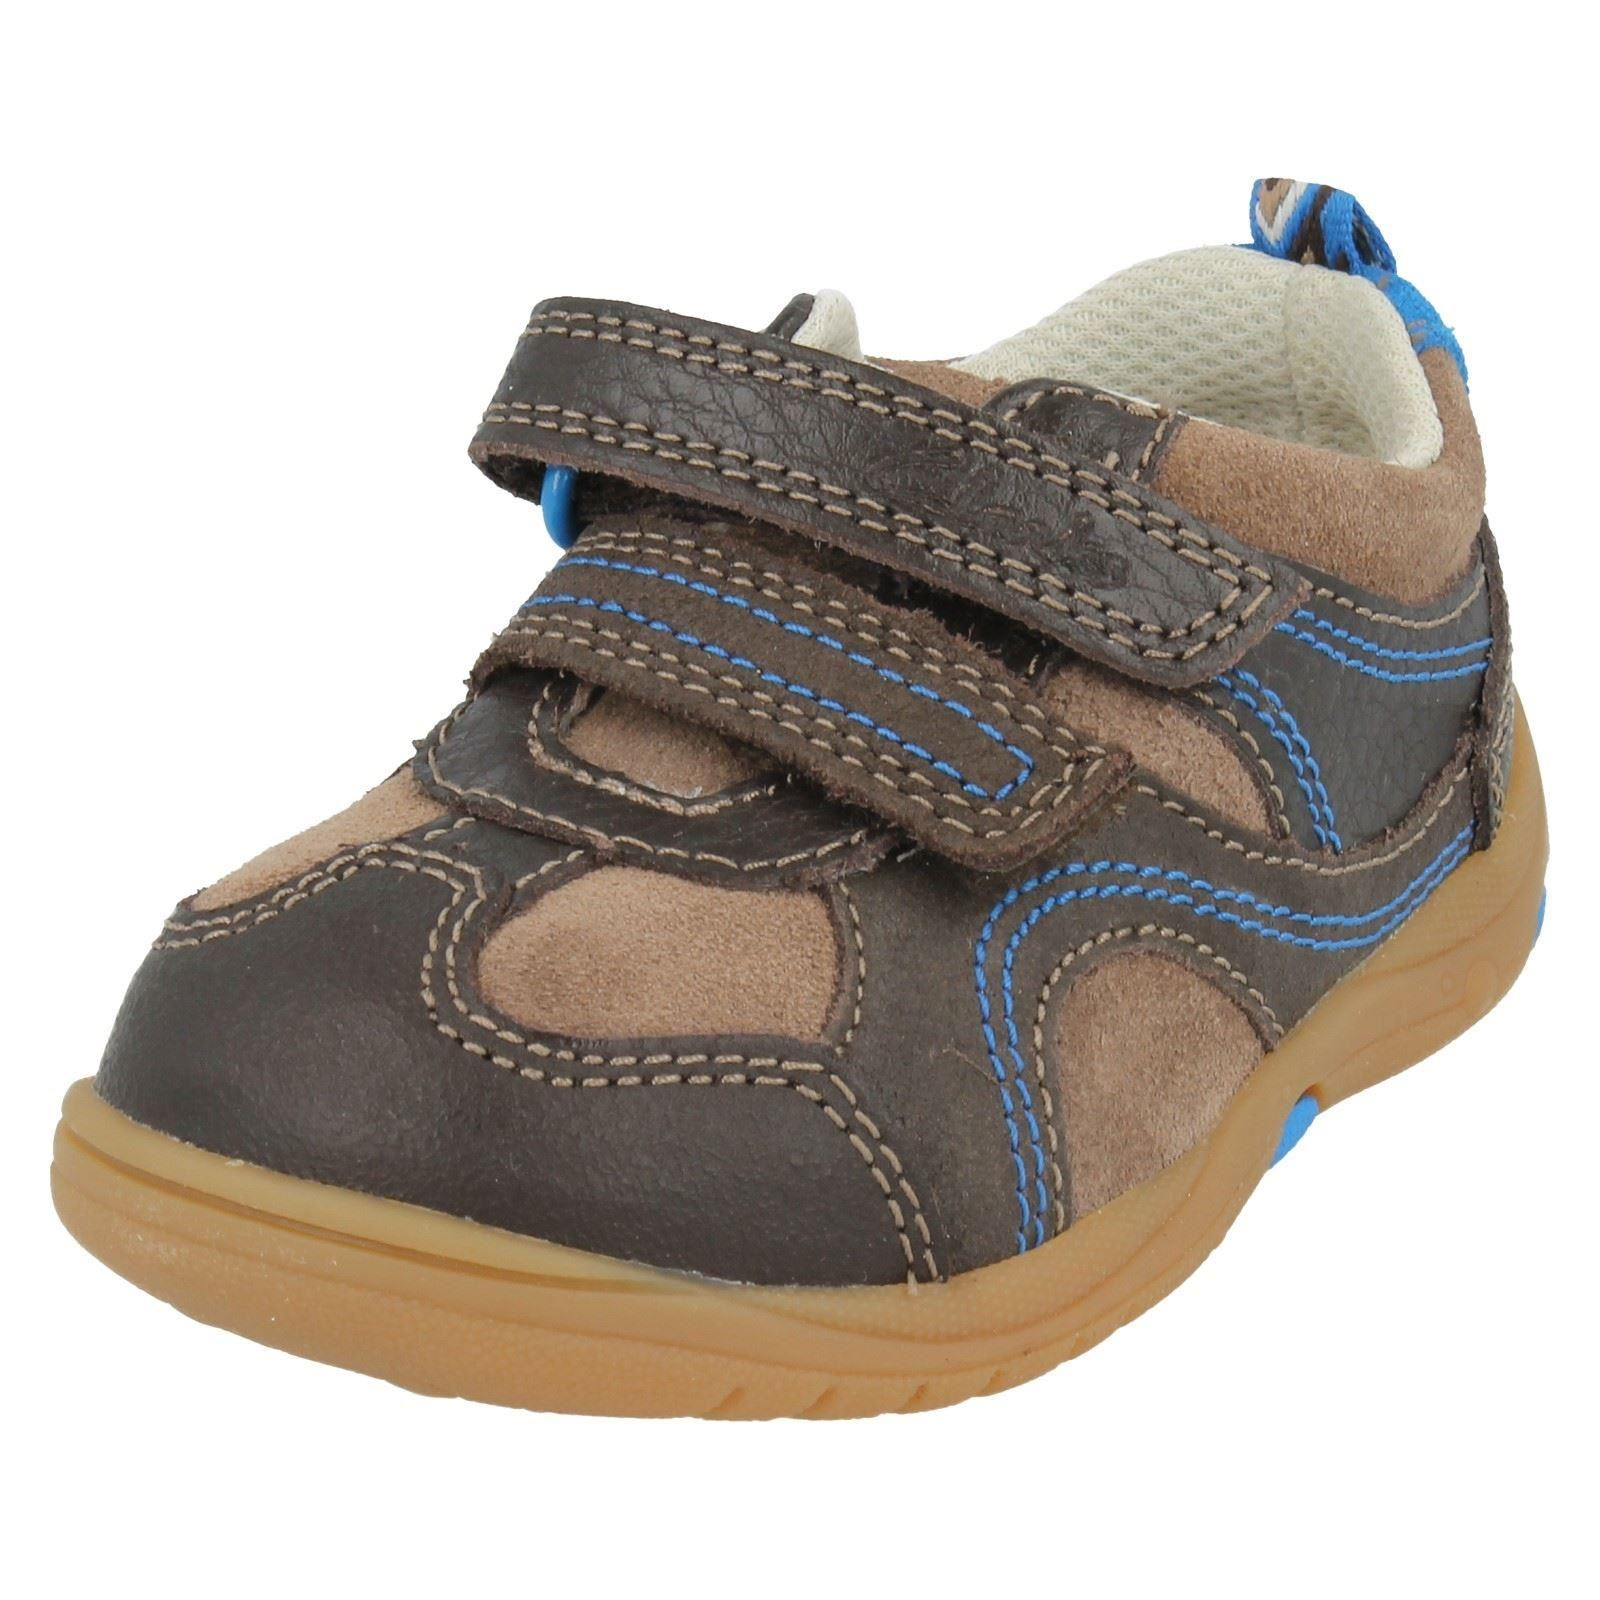 Boys Clarks First Shoes Style - Ru Rocks